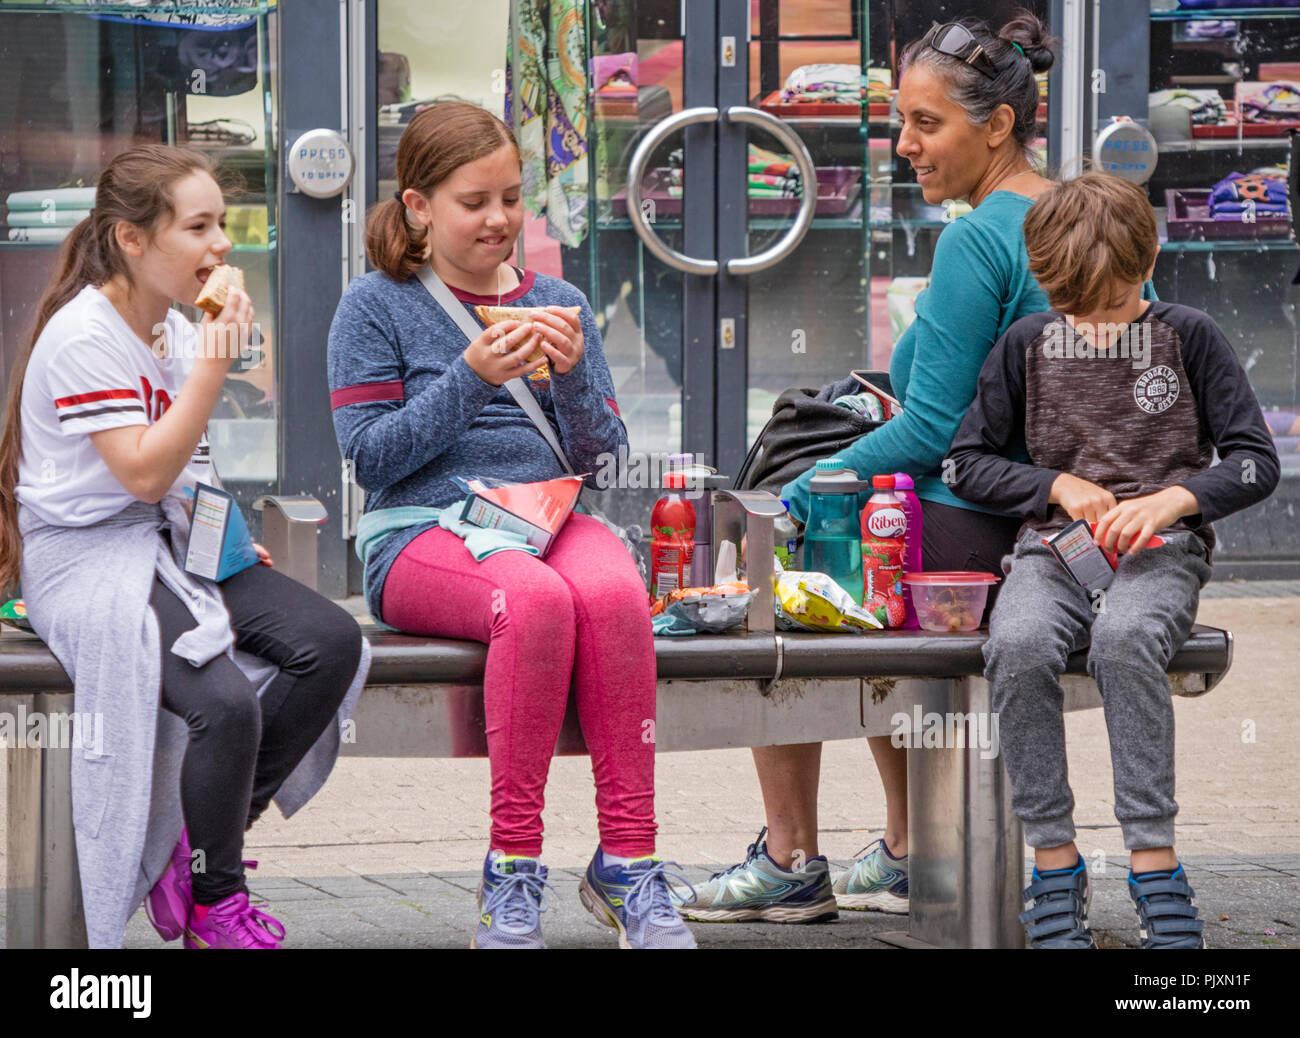 Children eating shop bought fast food while shopping in Bristol, England, UK Stock Photo